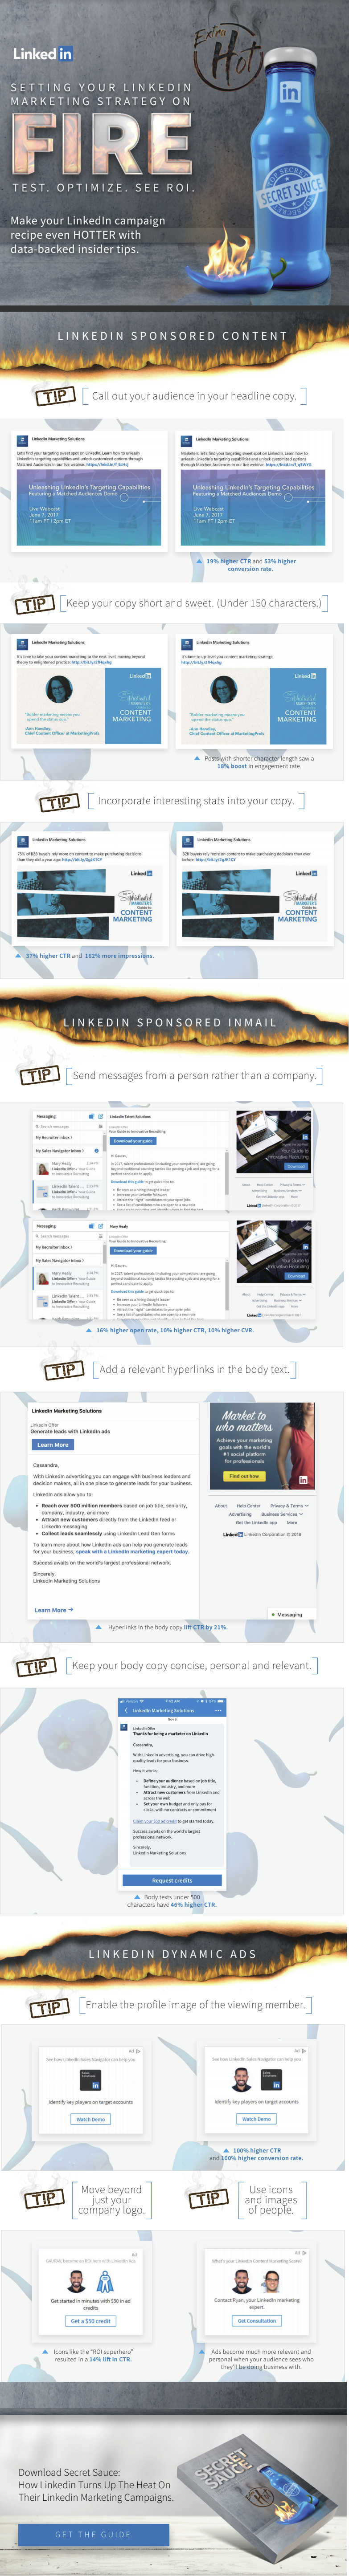 LinkedIn Releases New Guide to Optimizing Your LinkedIn Ad Campaigns [Infographic] | Social Media Today